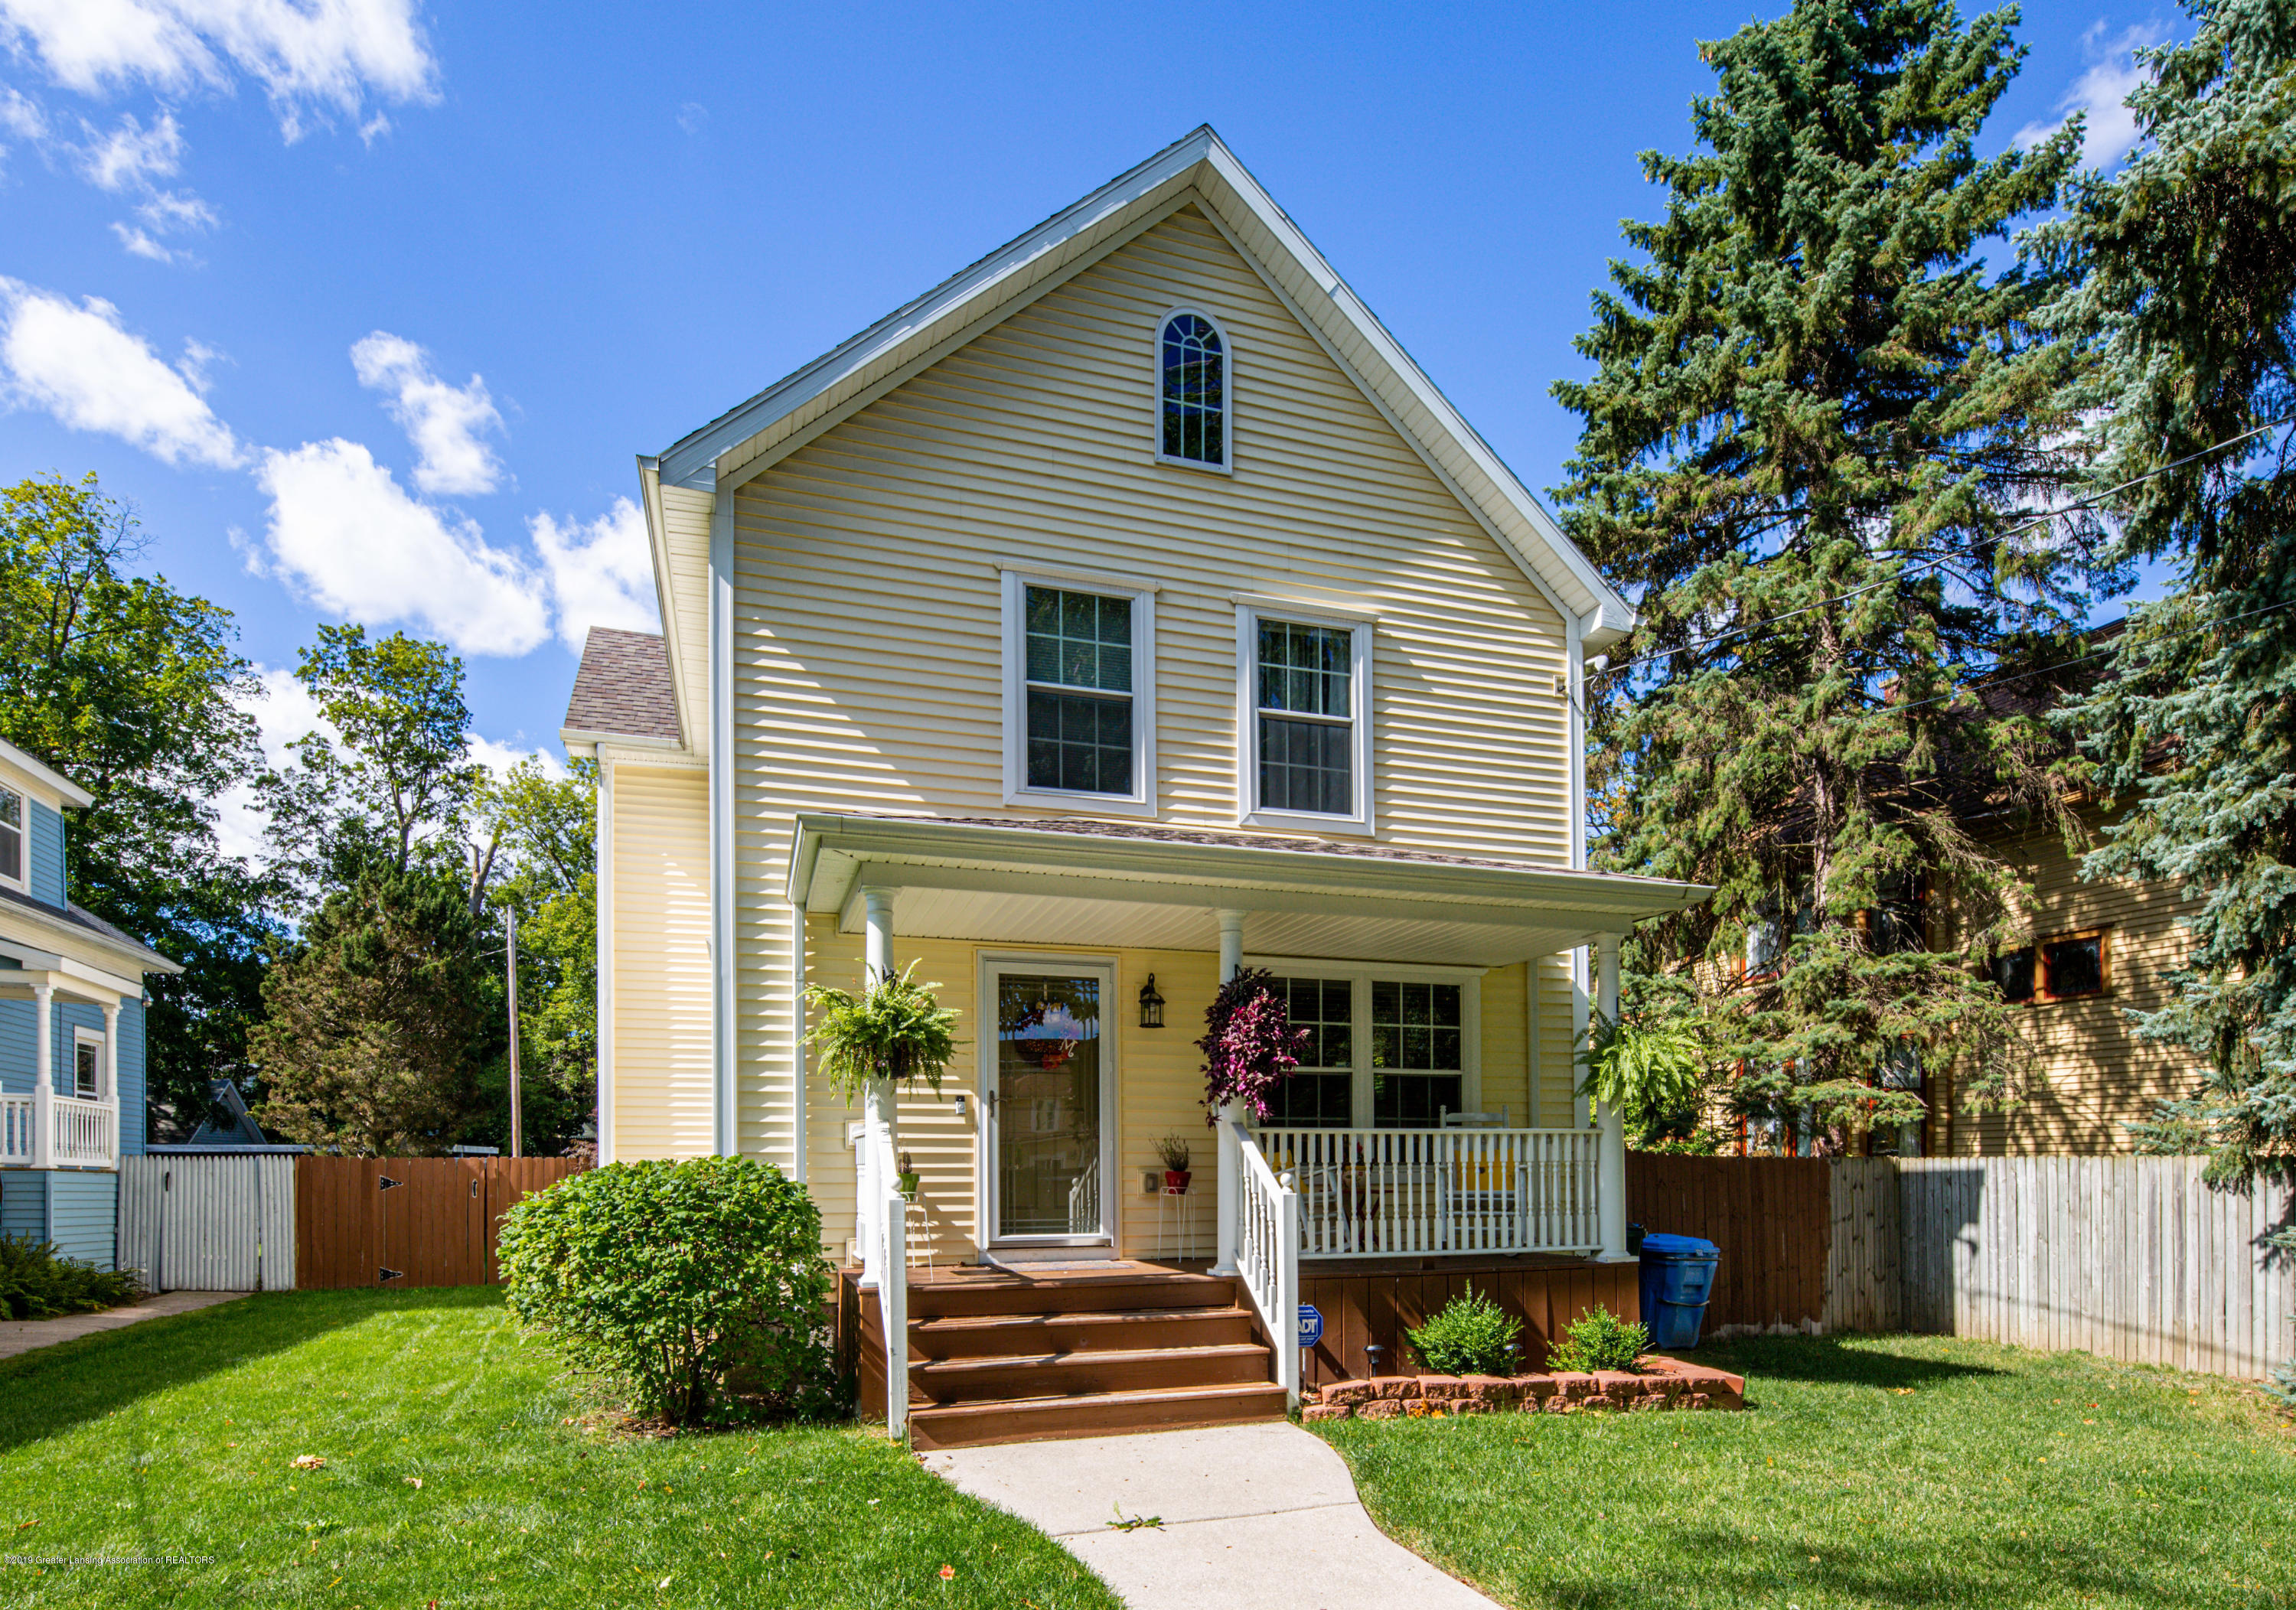 731 Seymour Ave - 20190926-942A4521 - 1